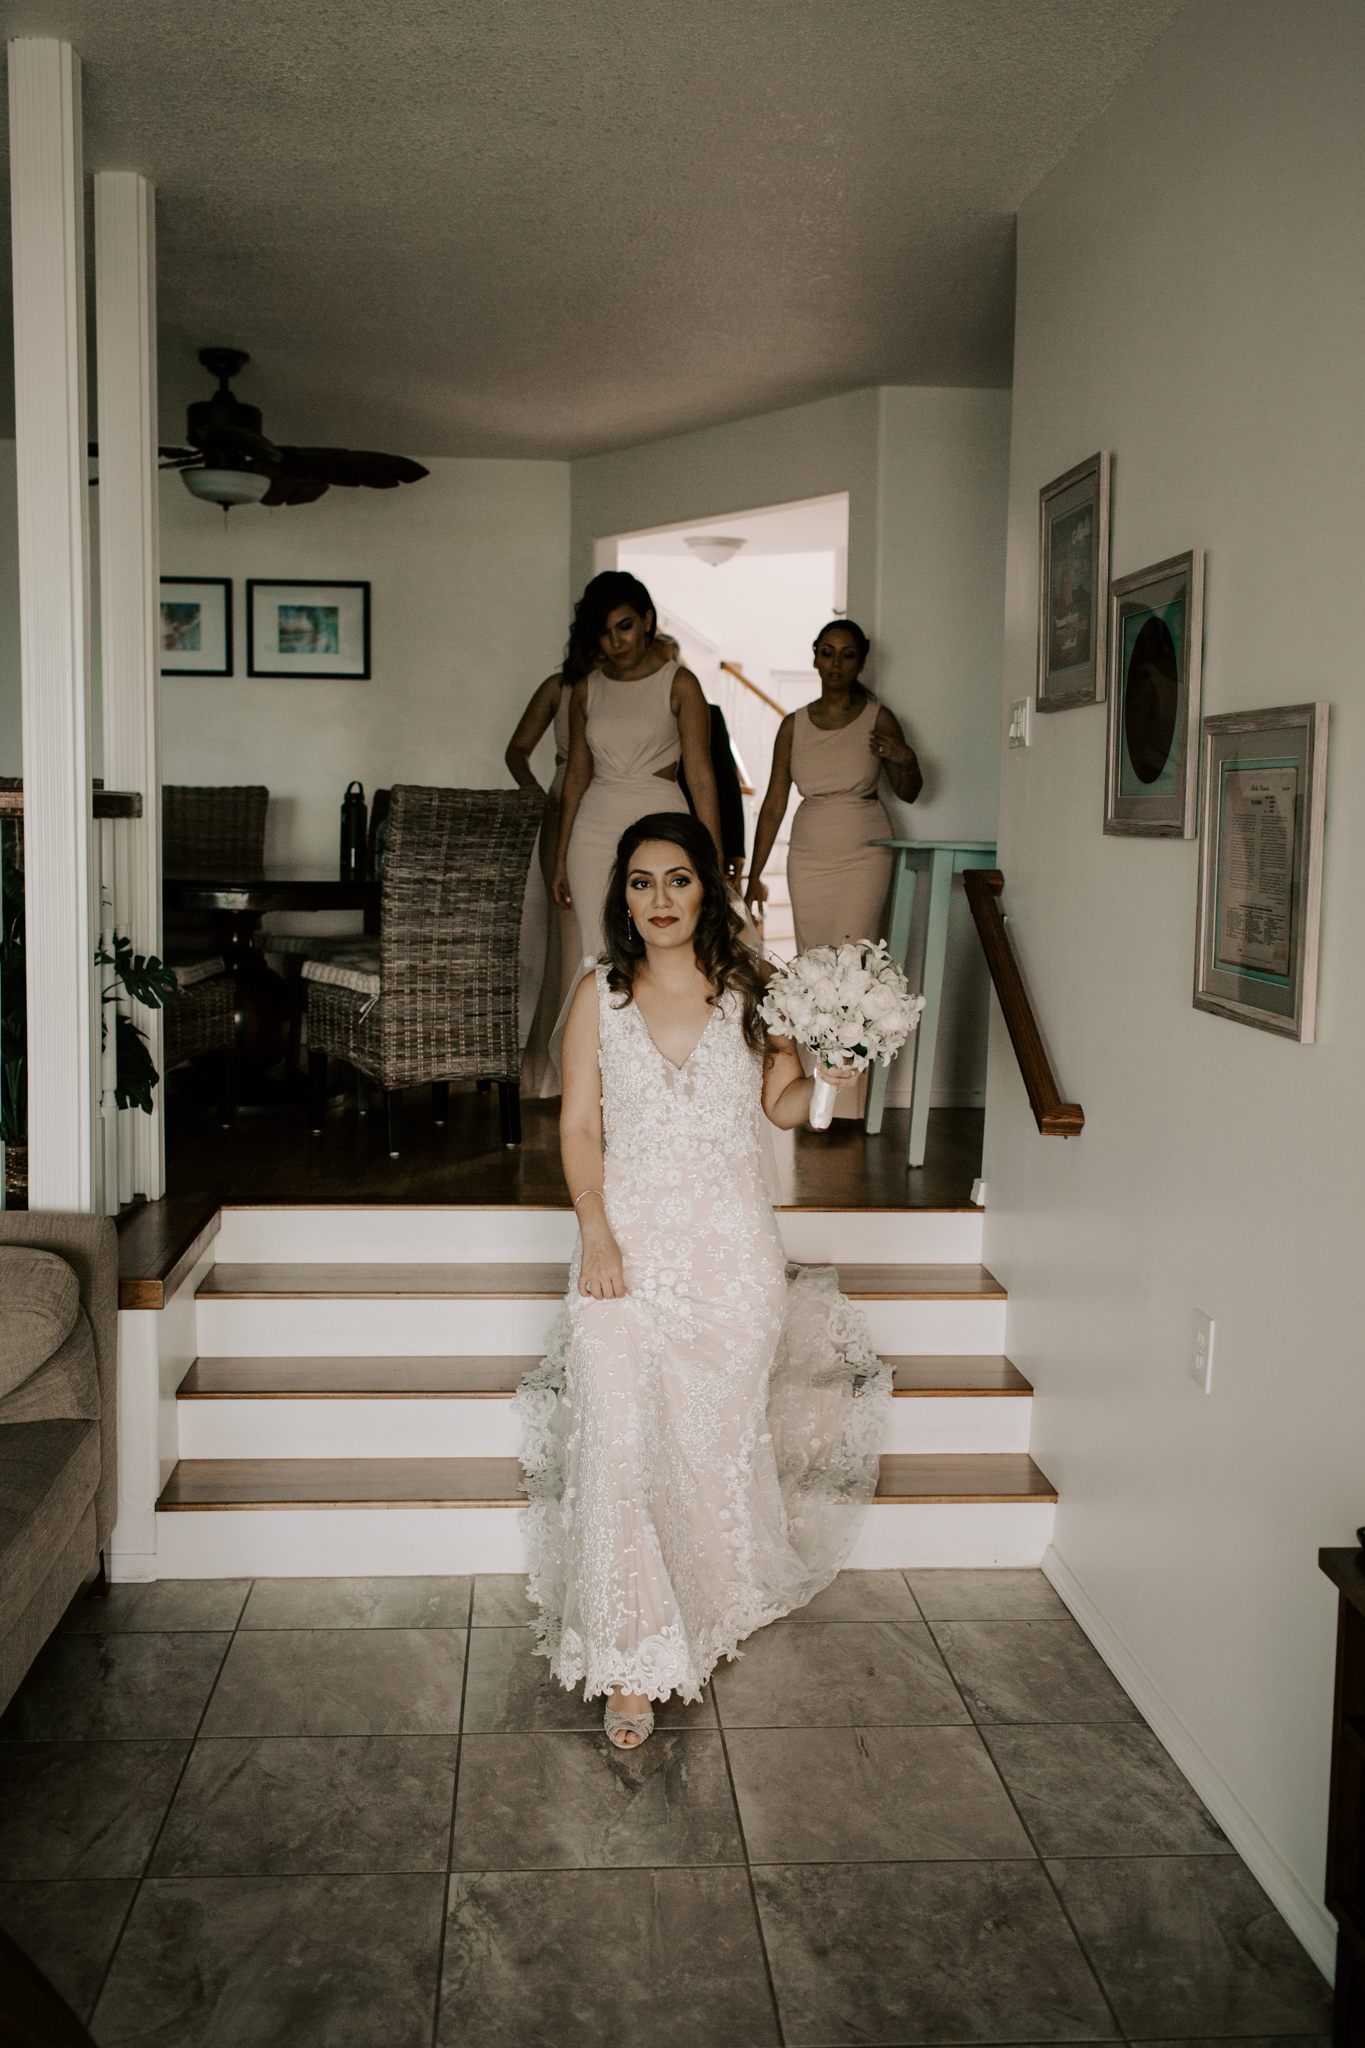 Bride about to walk down the aisle